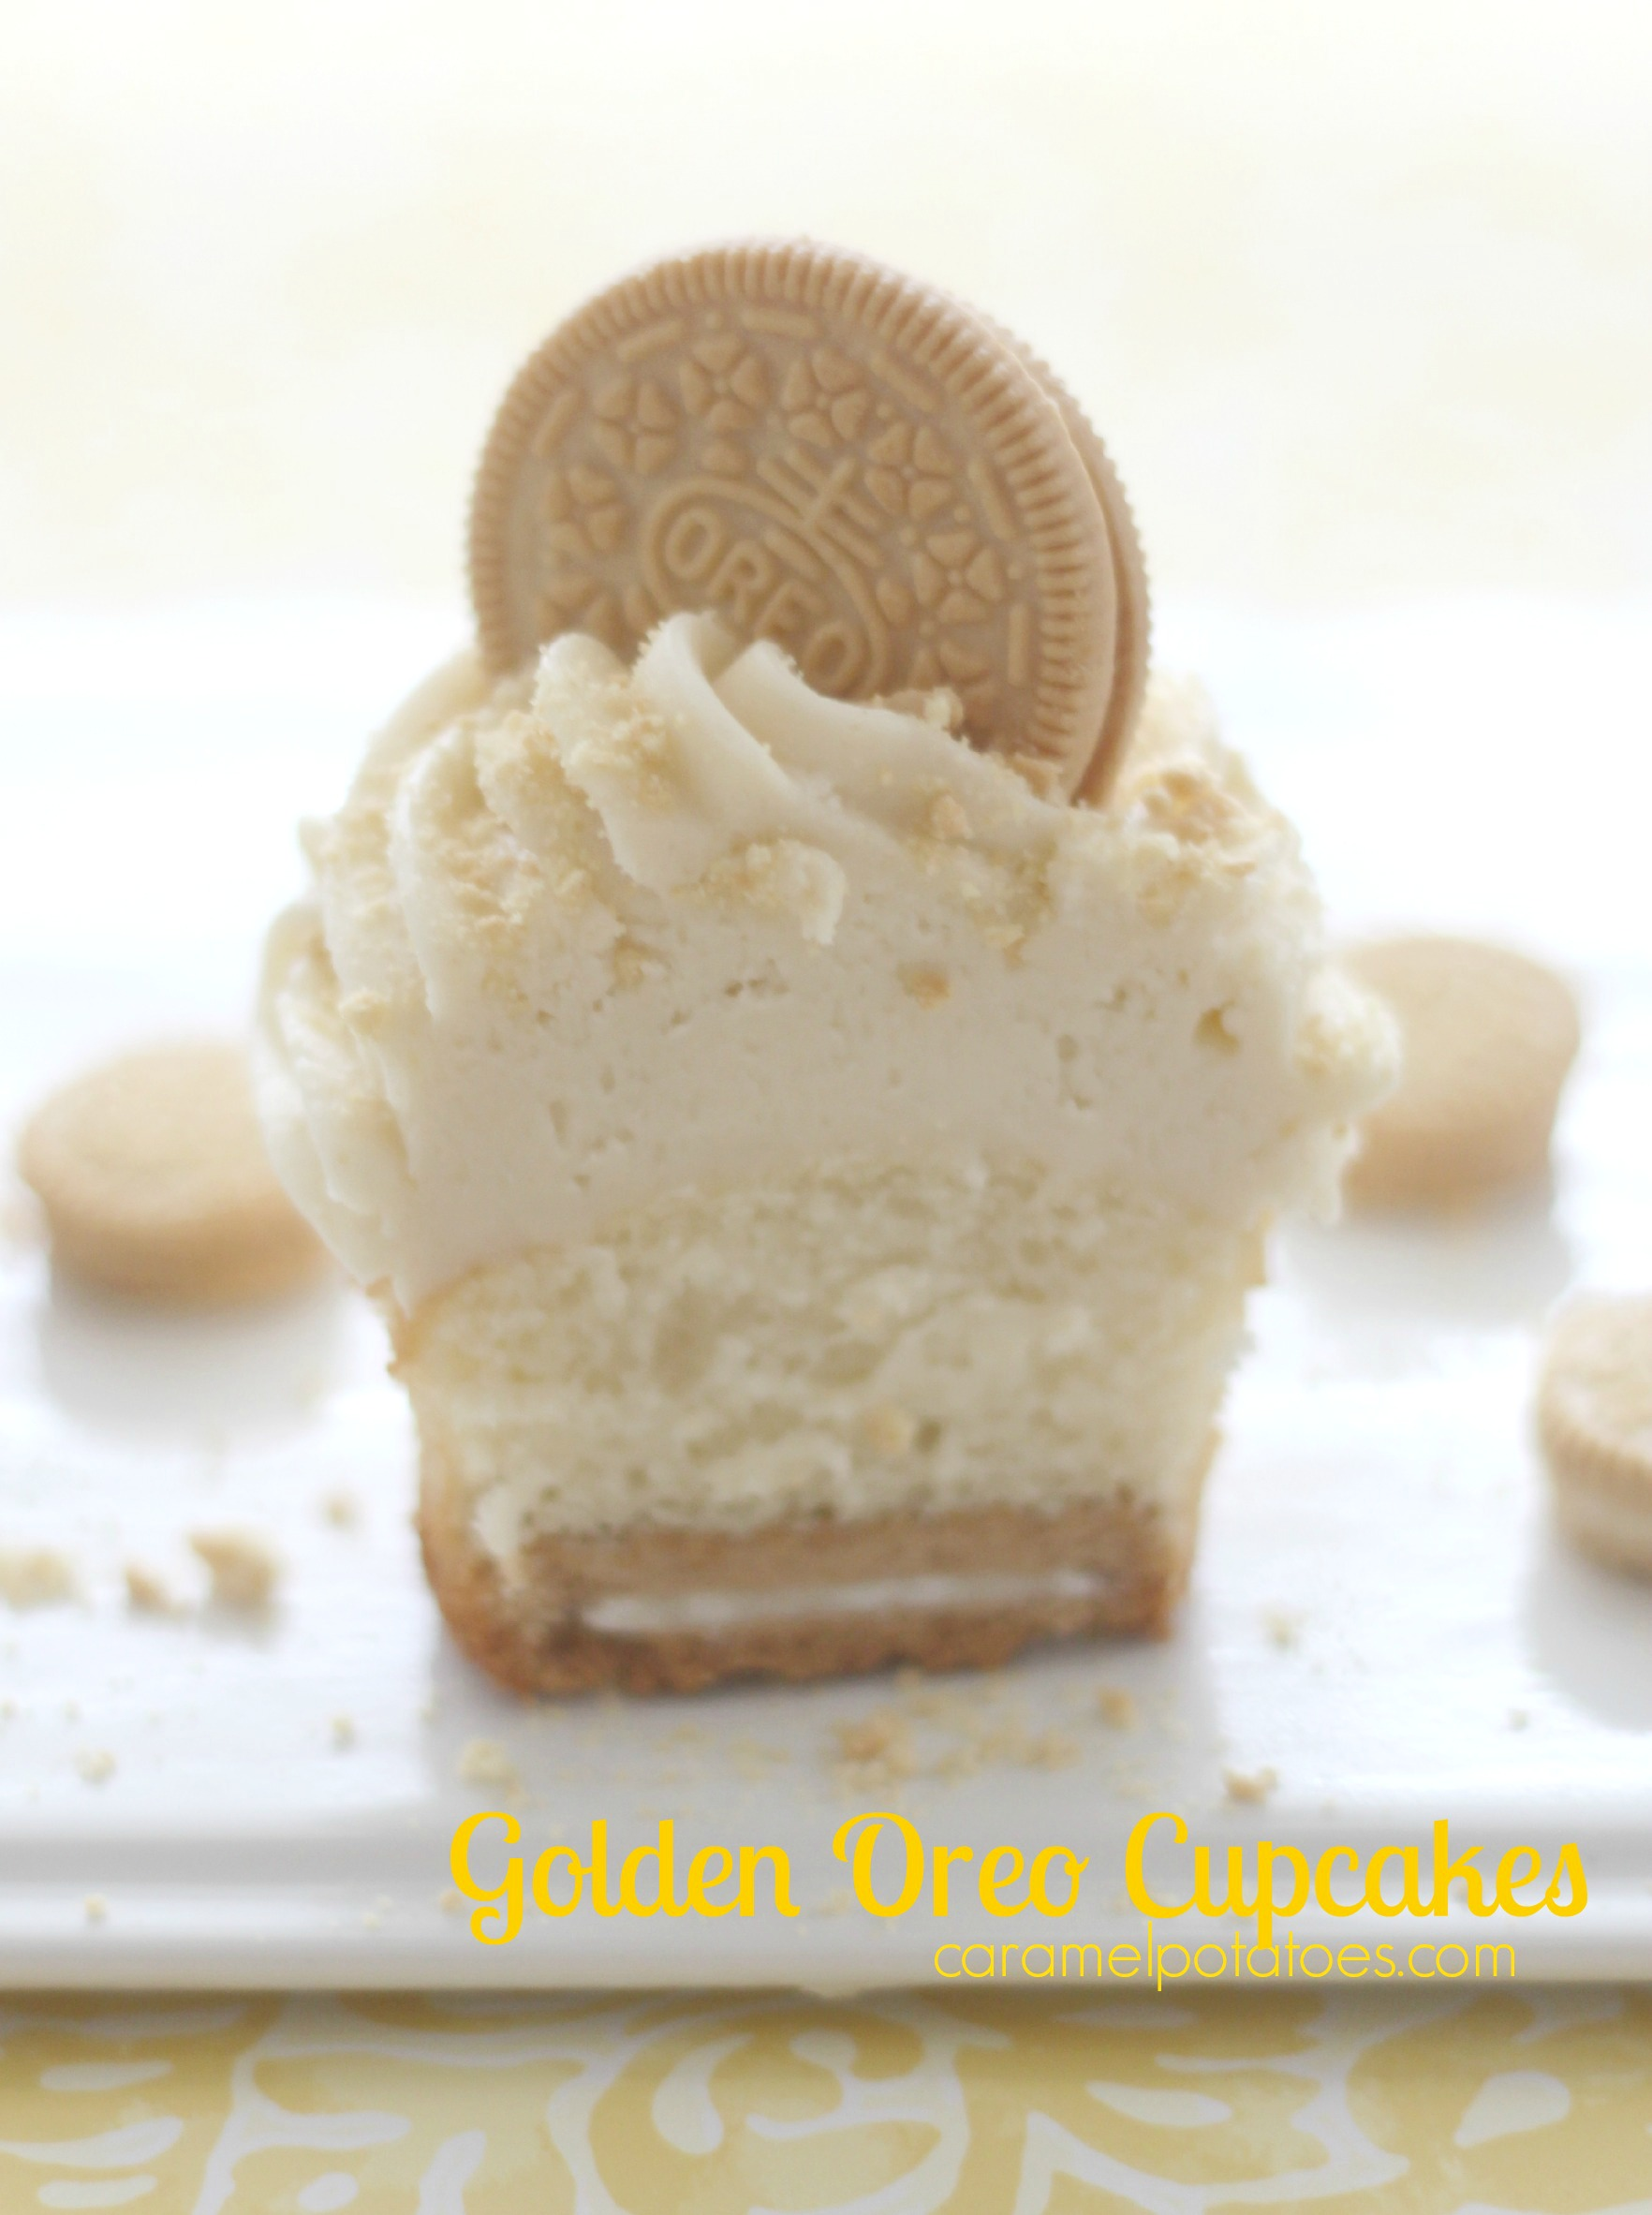 Golden Oreo Cupcakes Based on the oreo cookie with